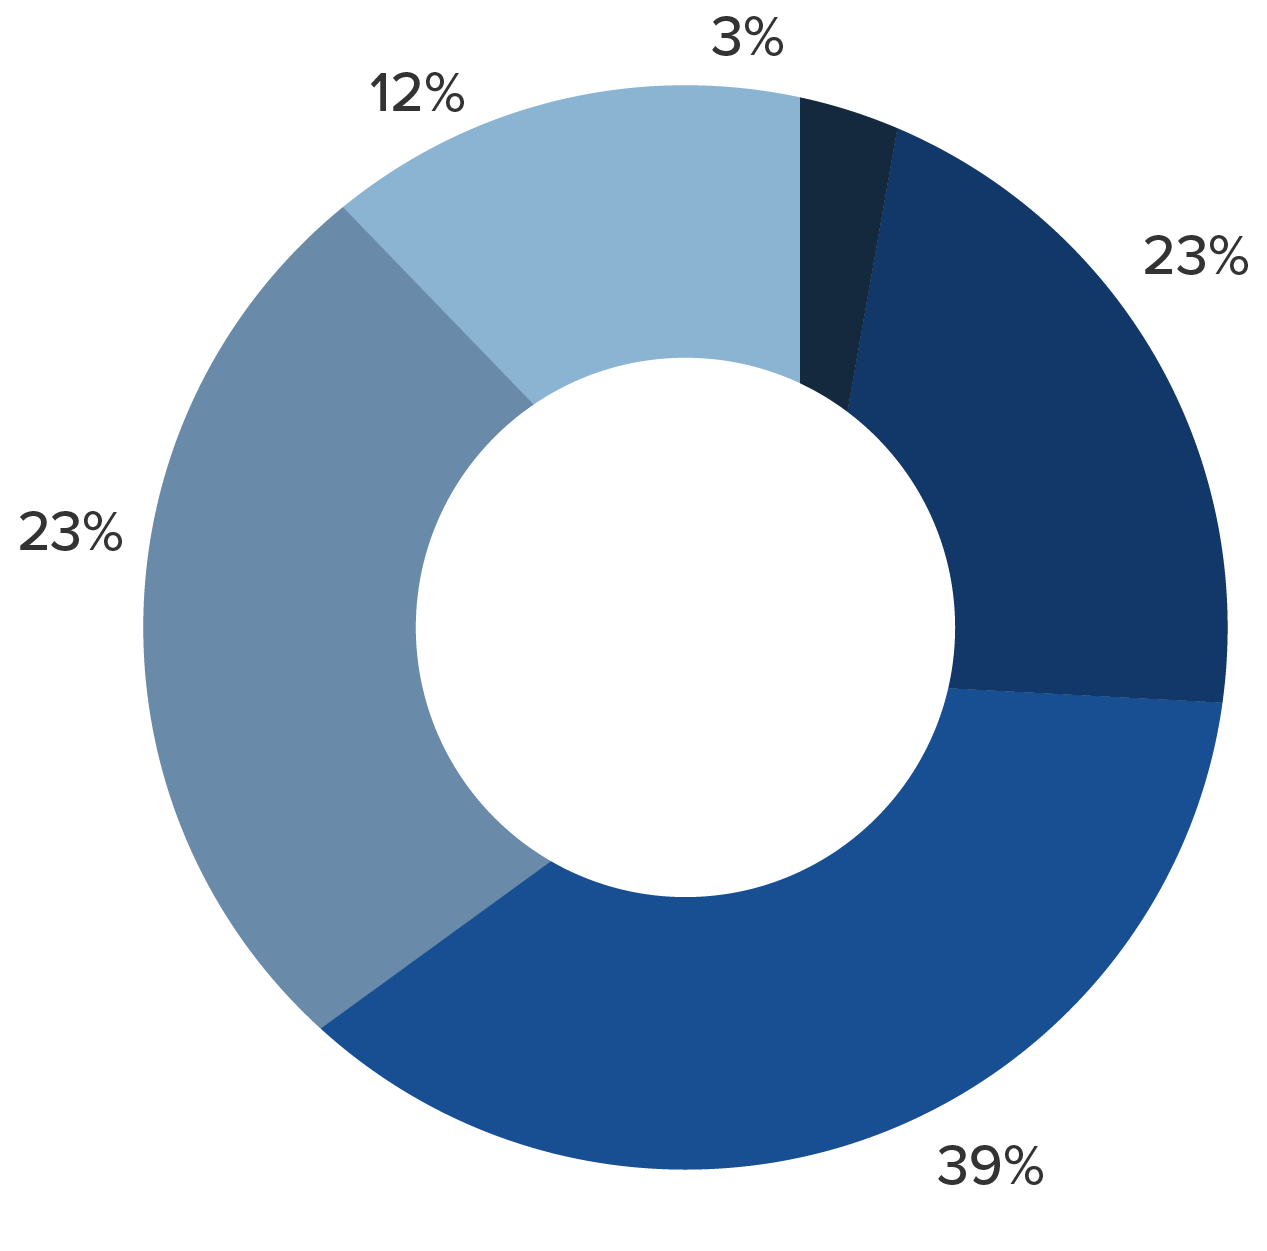 donut diagram showing percentages of global age groups